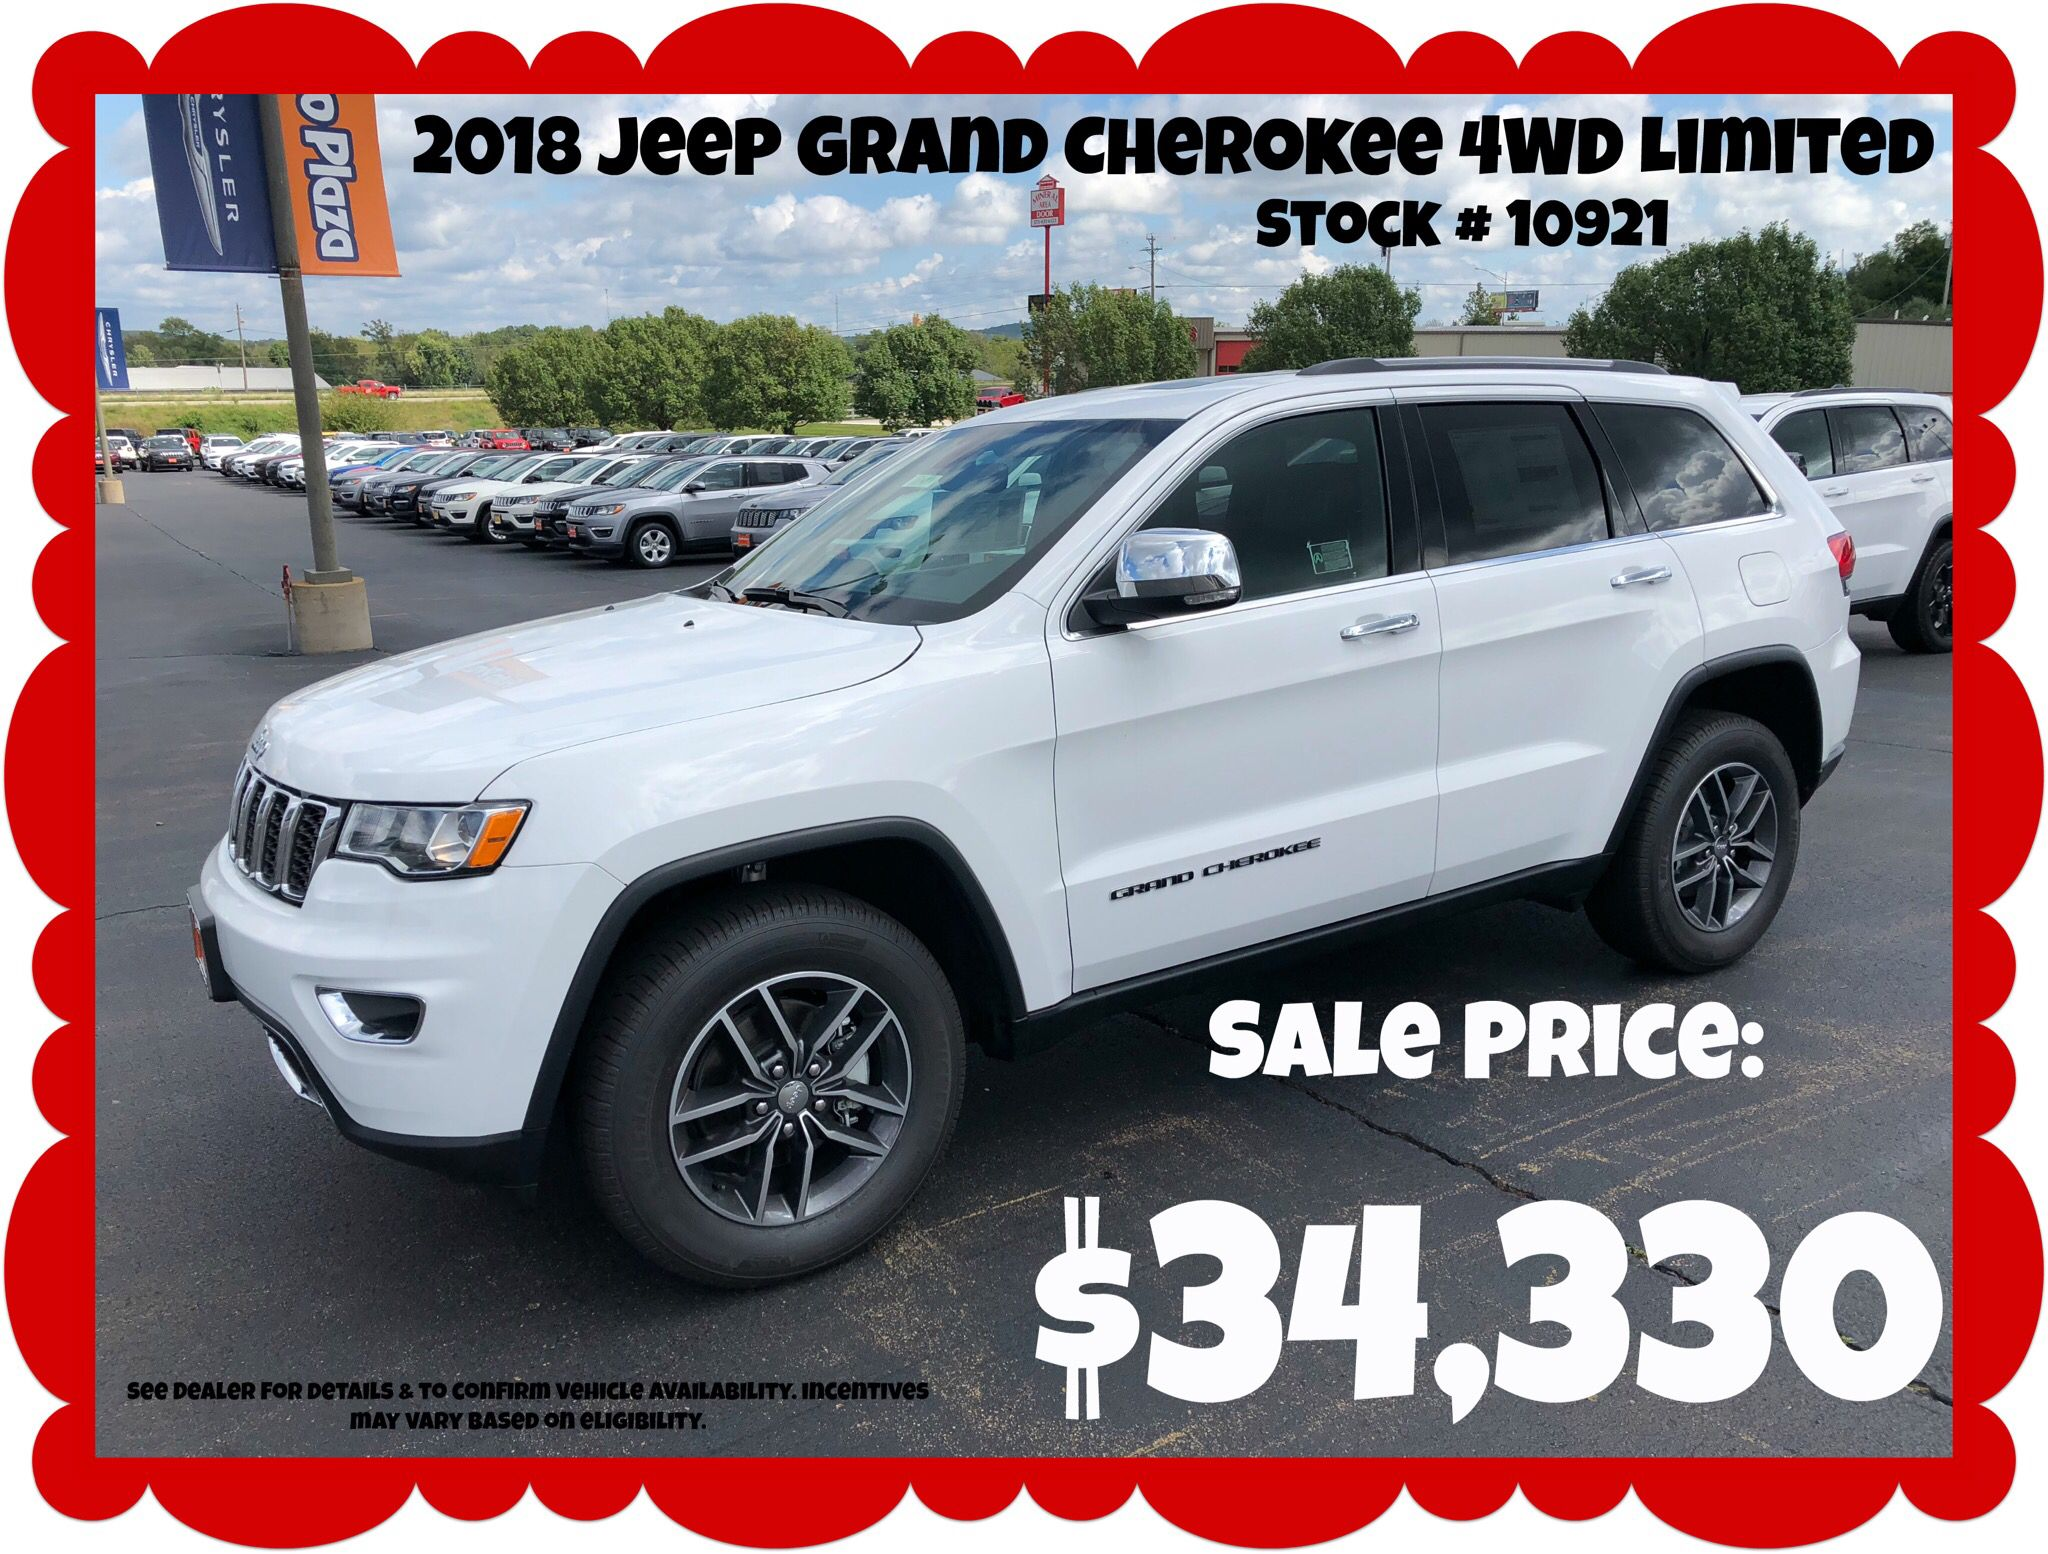 This Suv Is For Everyone College Kids Busy Working Mothers First Drivers Families And Beyond Join Jeep Adventure Days Jeep Chrysler Jeep Grand Cherokee